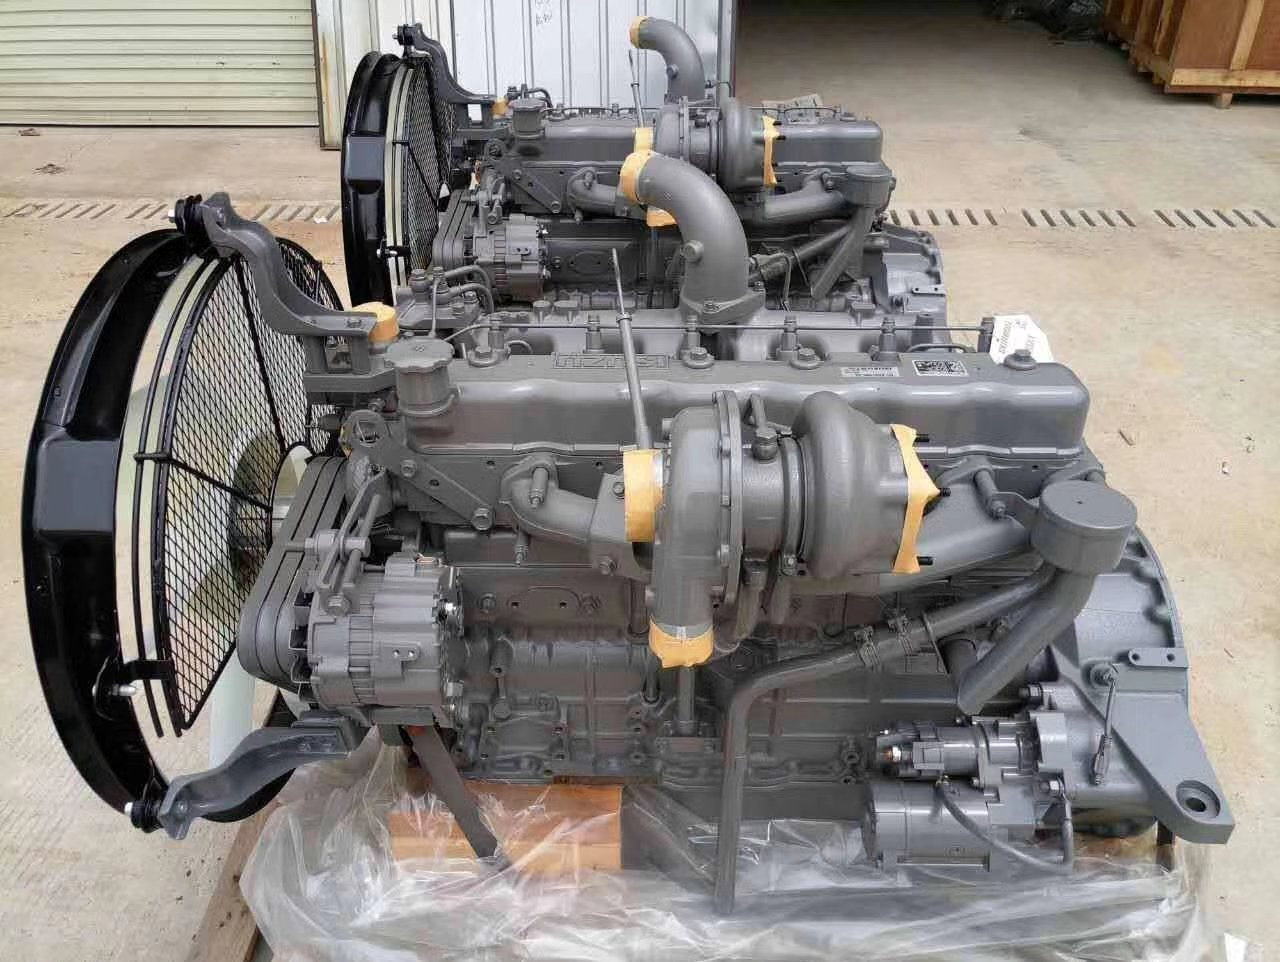 China Isuzu 6bg1 Engine, Isuzu 6bg1 Engine Manufacturers, Suppliers, Price  | Made-in-China com